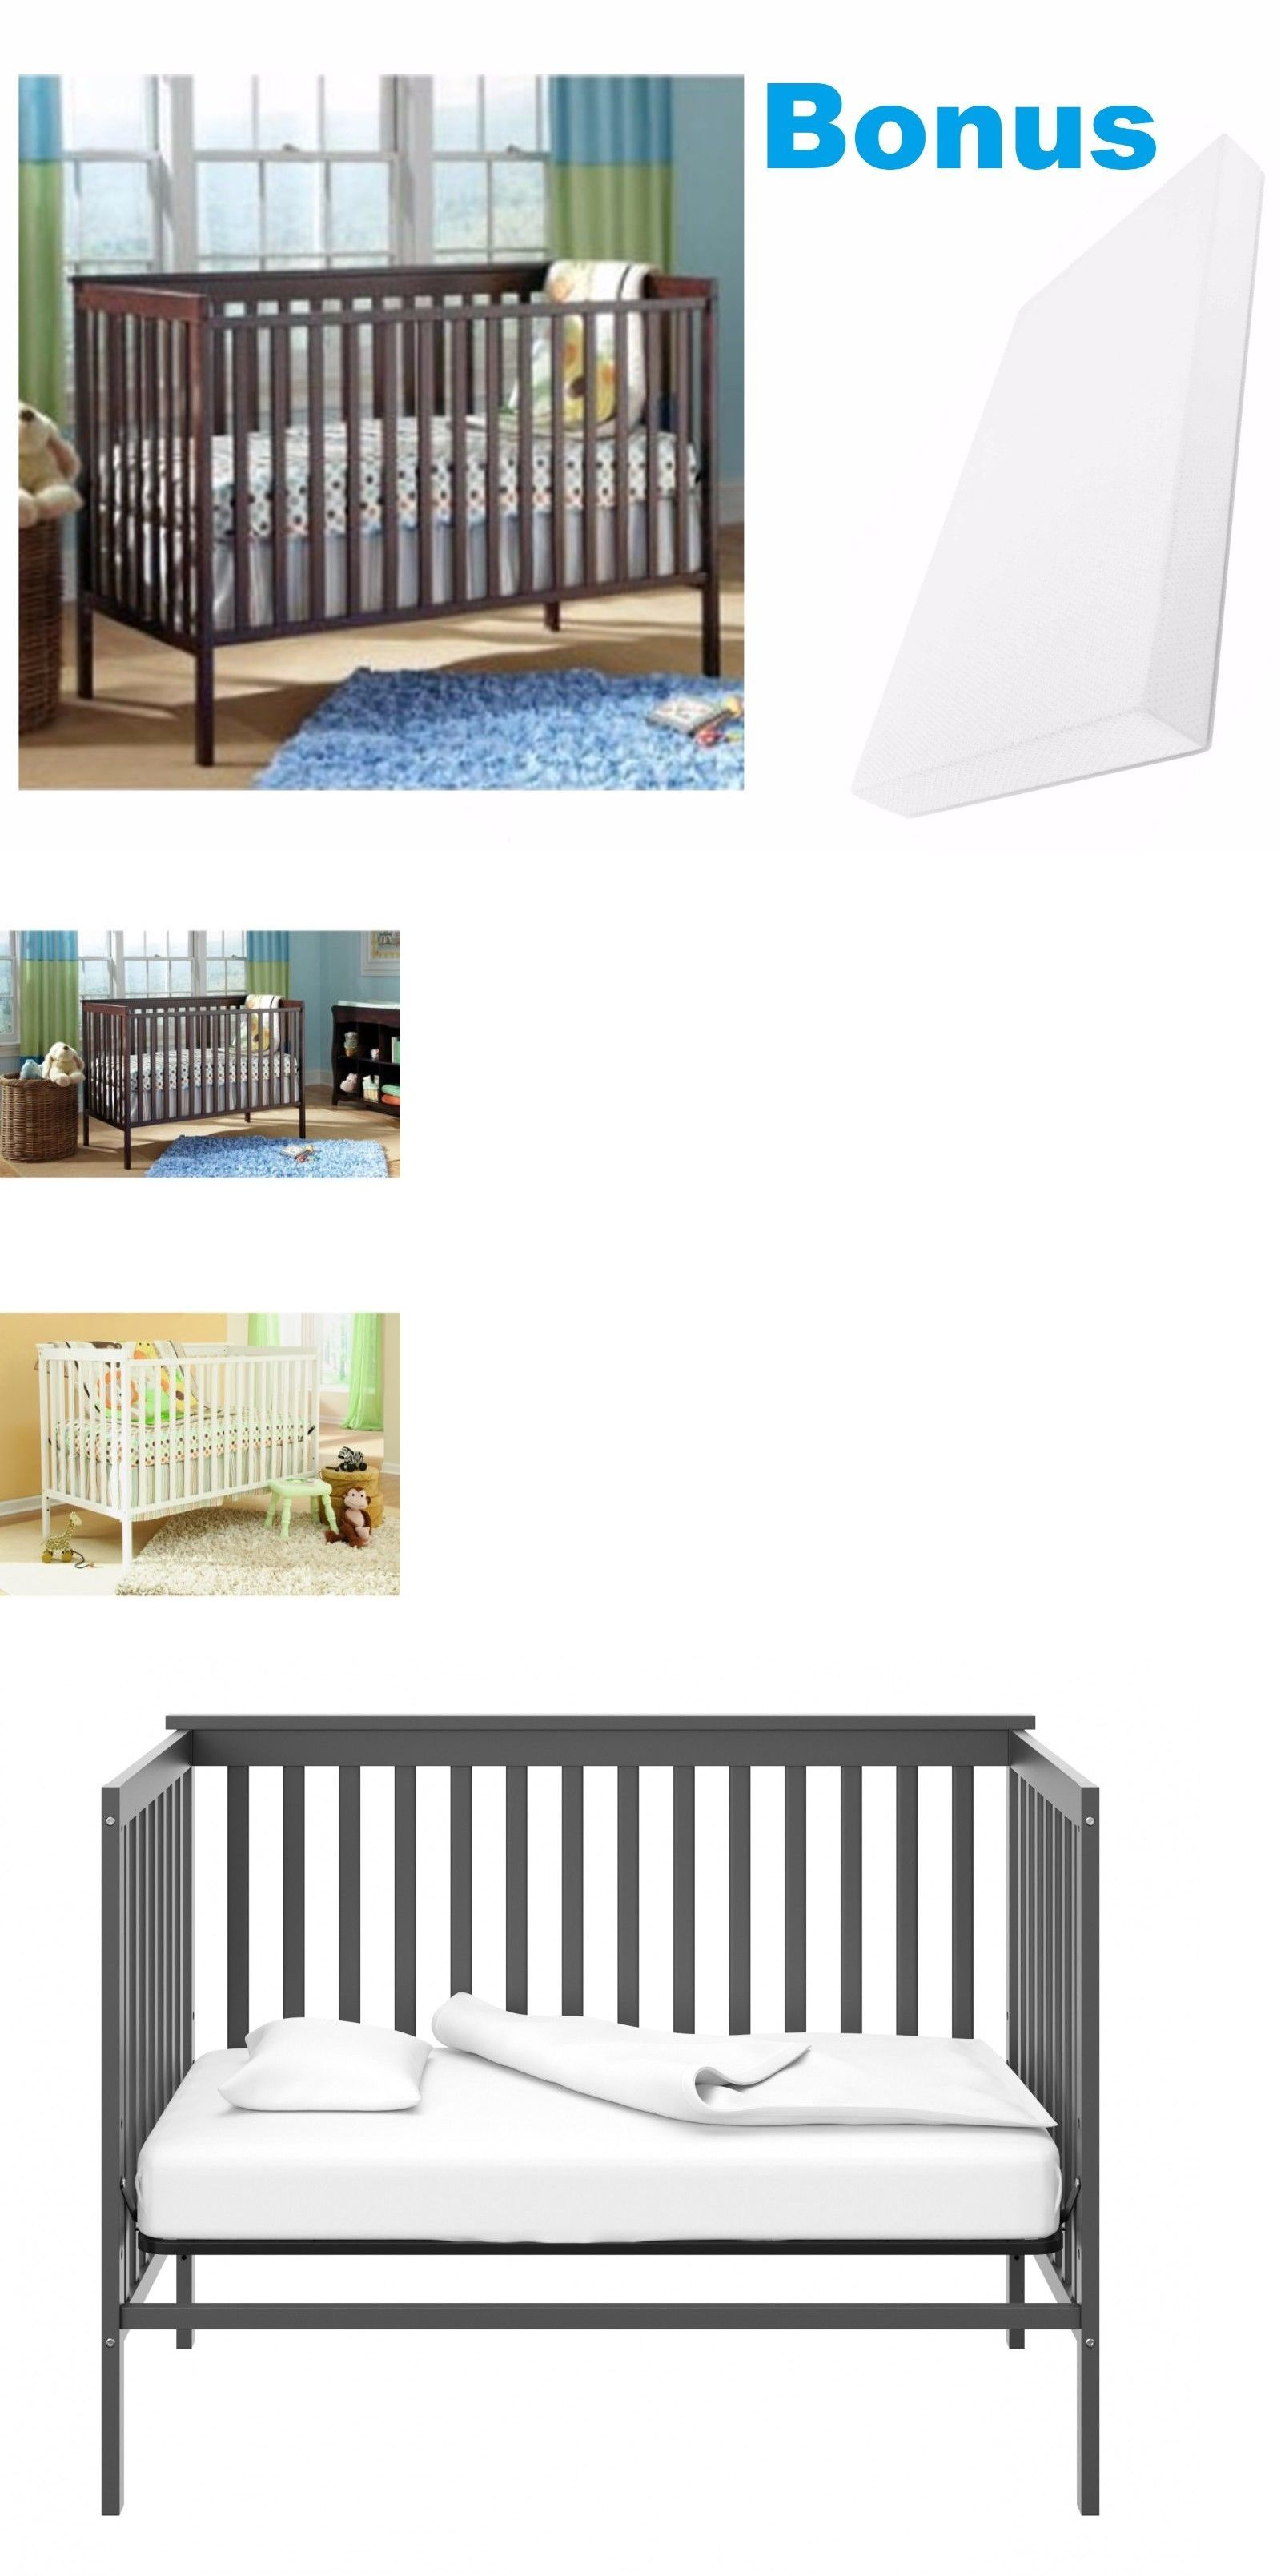 Nursery Furniture 20422 Convertible Crib Bonus Mattress Toddler Bed 4 In 1 Baby It Now Only 129 99 On Ebay